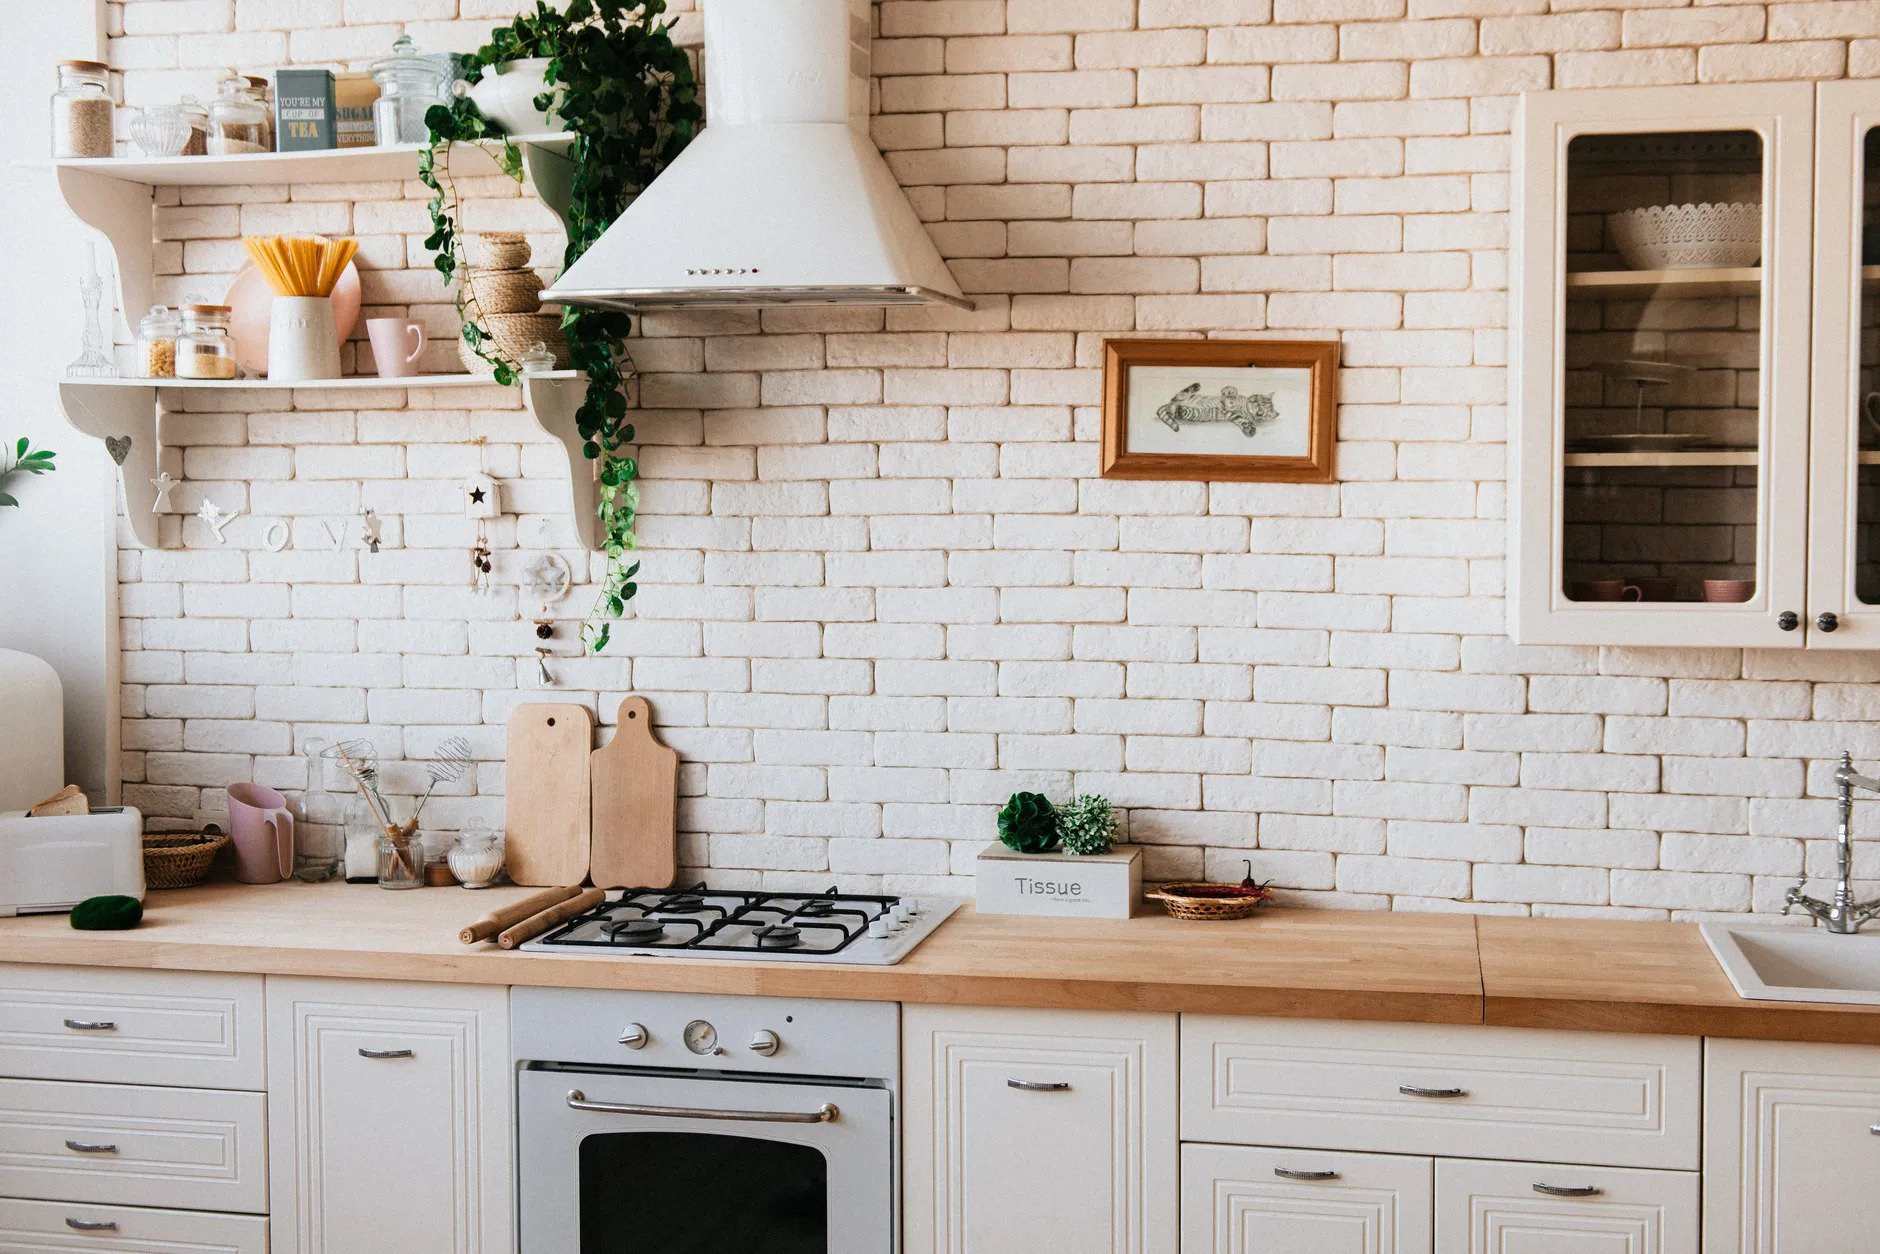 35. Modern Kitchen With Wooden Countertop Decor